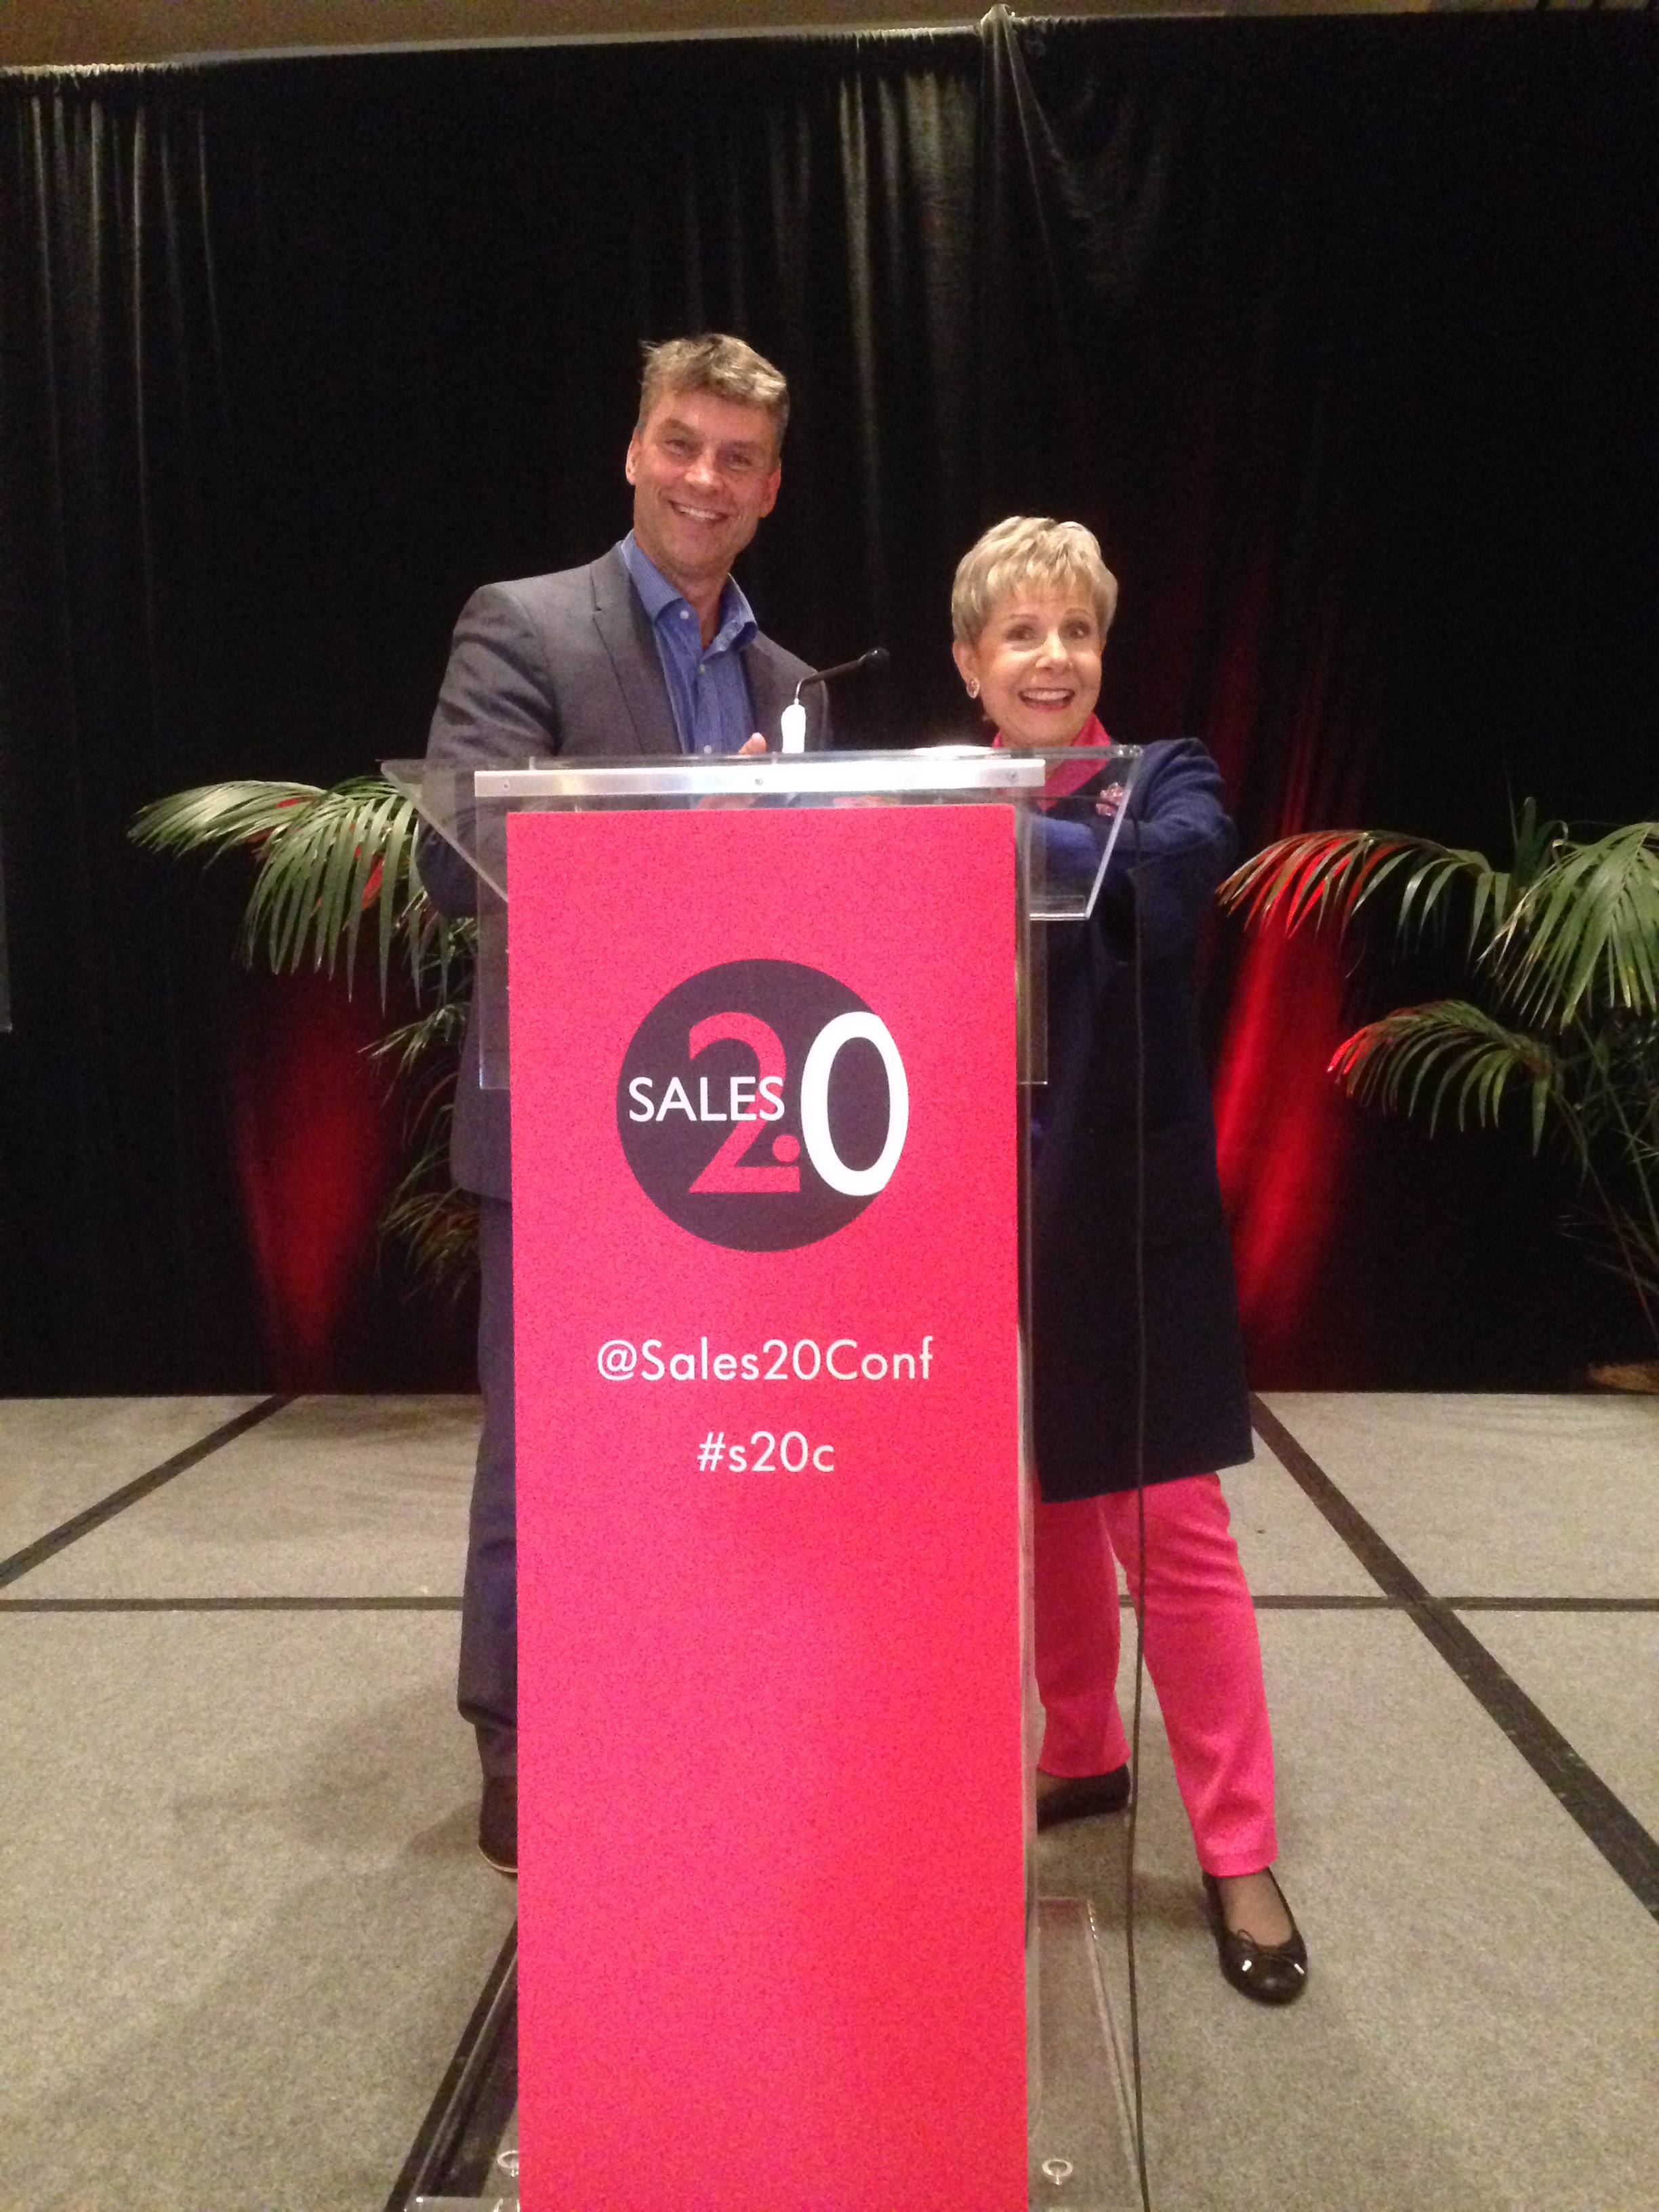 peter strohkorb with Patricia Fripp on stage at the sales 2.0 conference in san francisco, usa